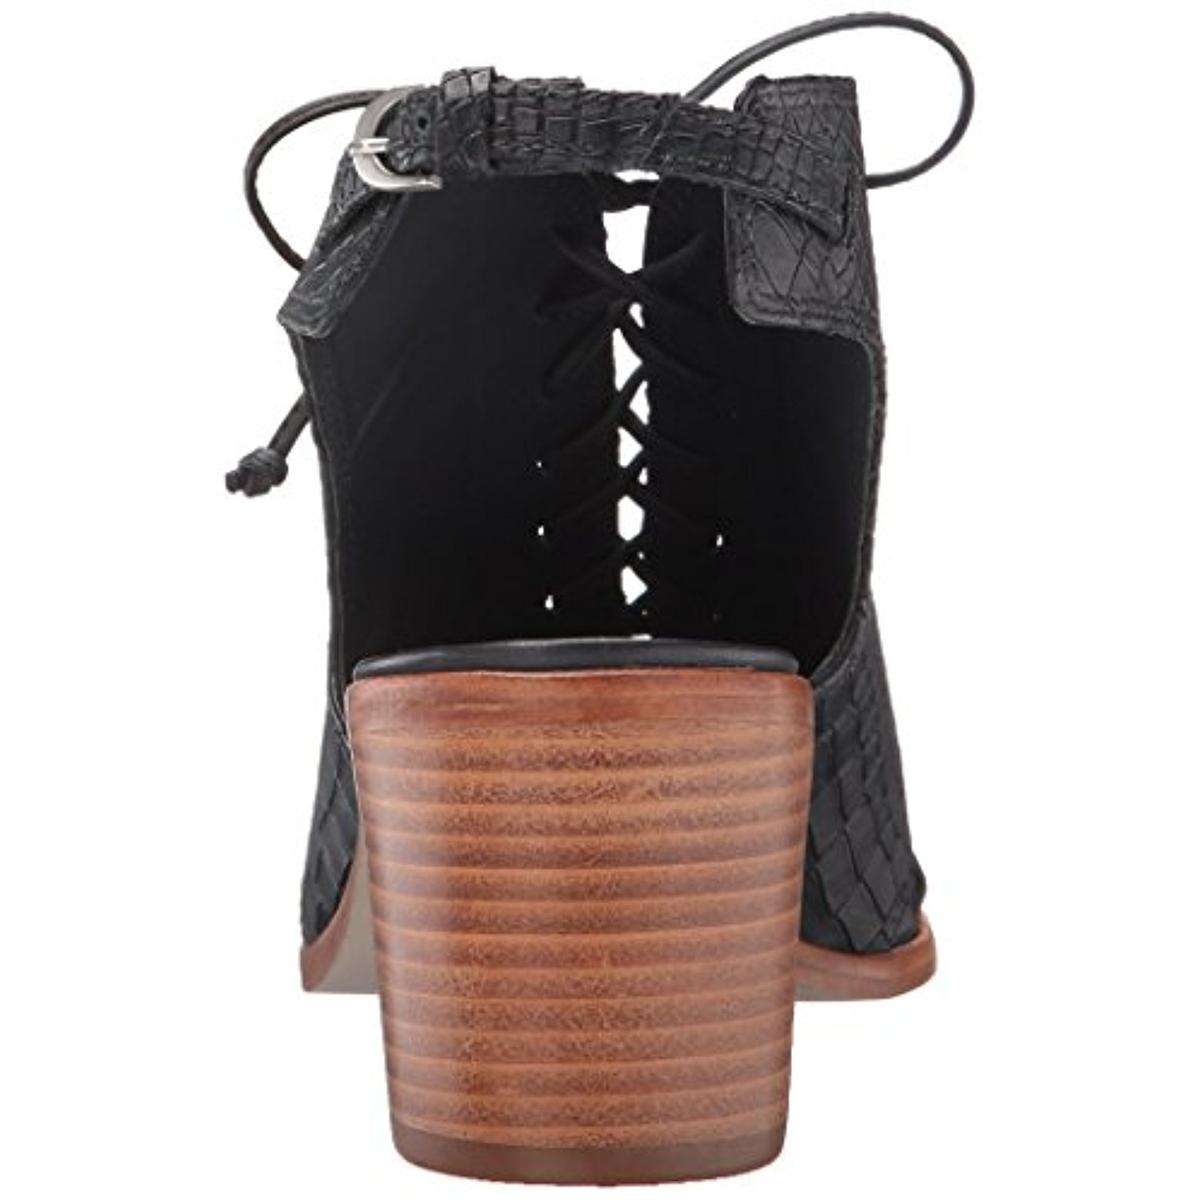 Find leather ankle boot stacked heel at ShopStyle. Shop the latest collection of leather ankle boot stacked heel from the most popular stores - all in. Mjus Deliah Brown Leather Stacked Heel Ankle Boot $ $ Get a .